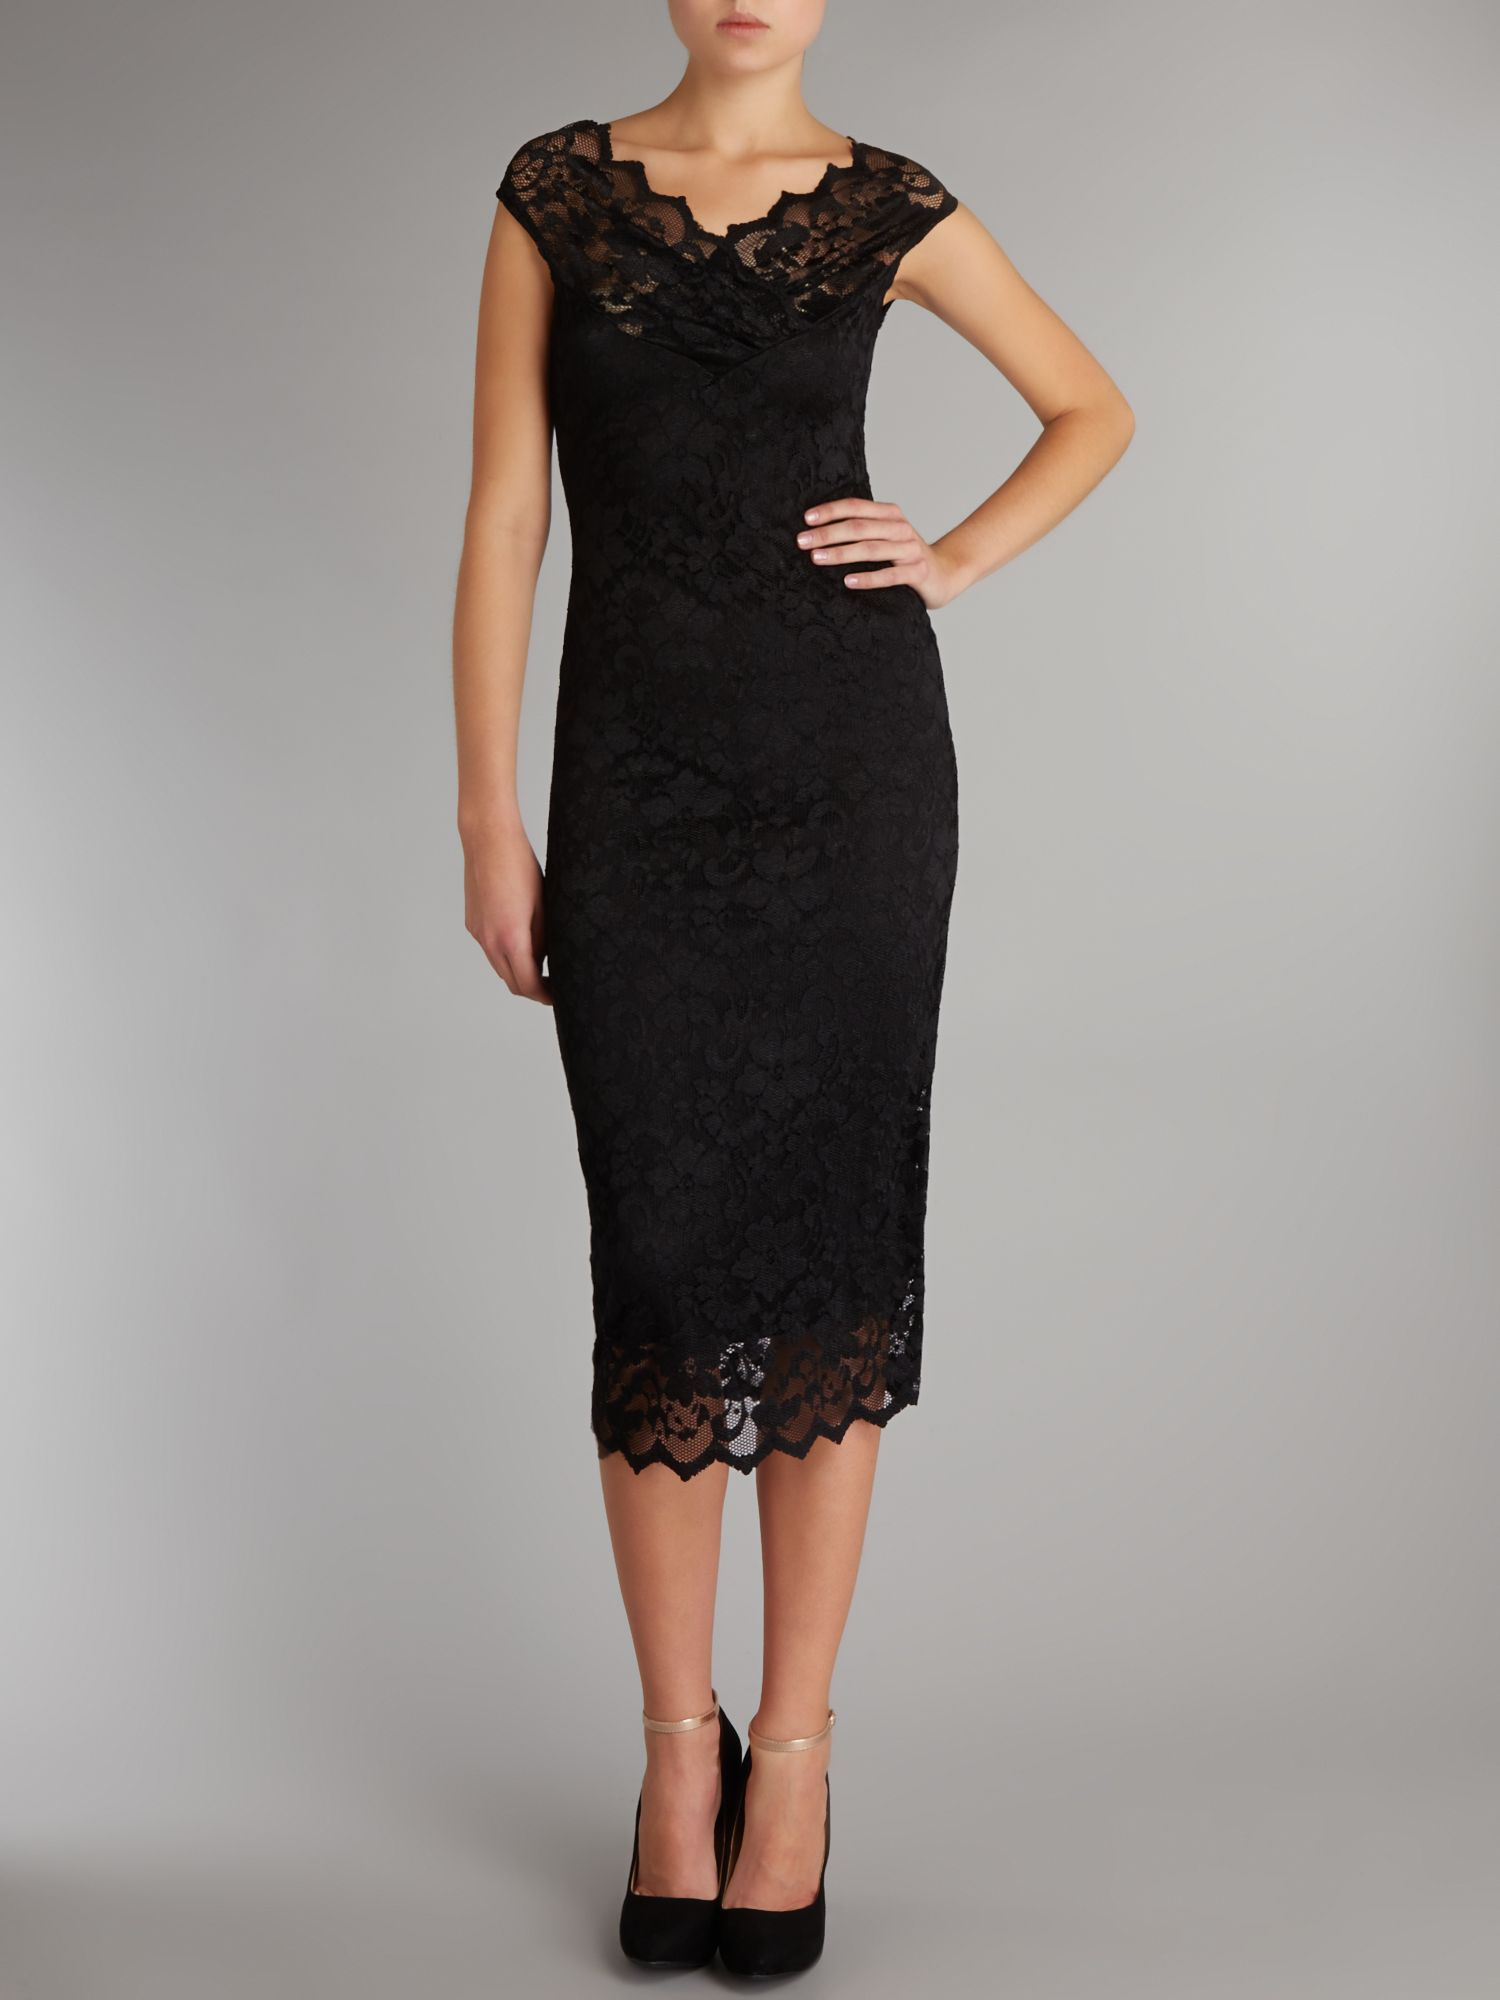 Cross over neck lace dress